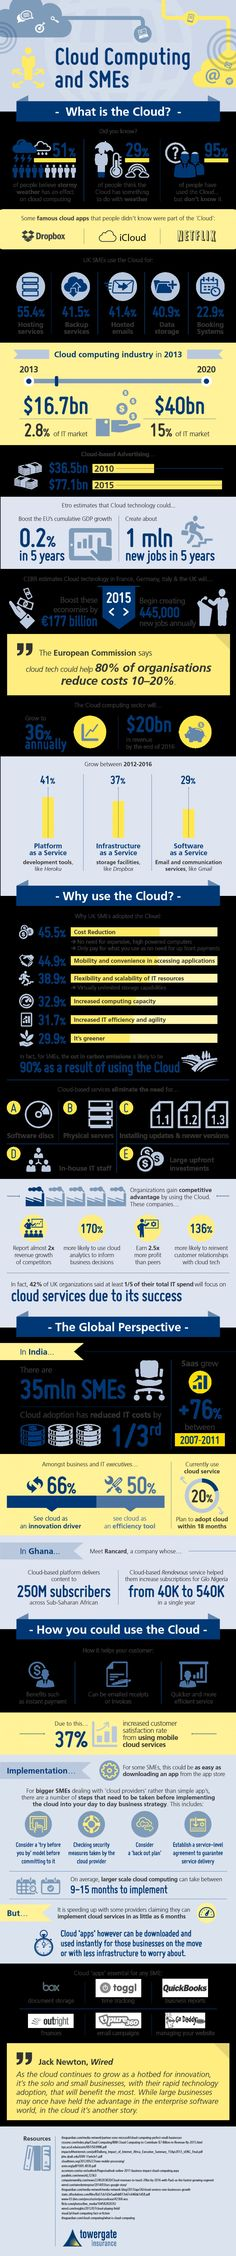 Is Cloud computing right for your small business? Our infographic explains the facts about Cloud computing and how SMEs can benefit from this technology. Cloud Computing Companies, What Is Cloud Computing, Computer Technology, Computer Science, Technology Apple, Computer Programming, Virtual Private Server, Cloud Infrastructure, Hosting Company